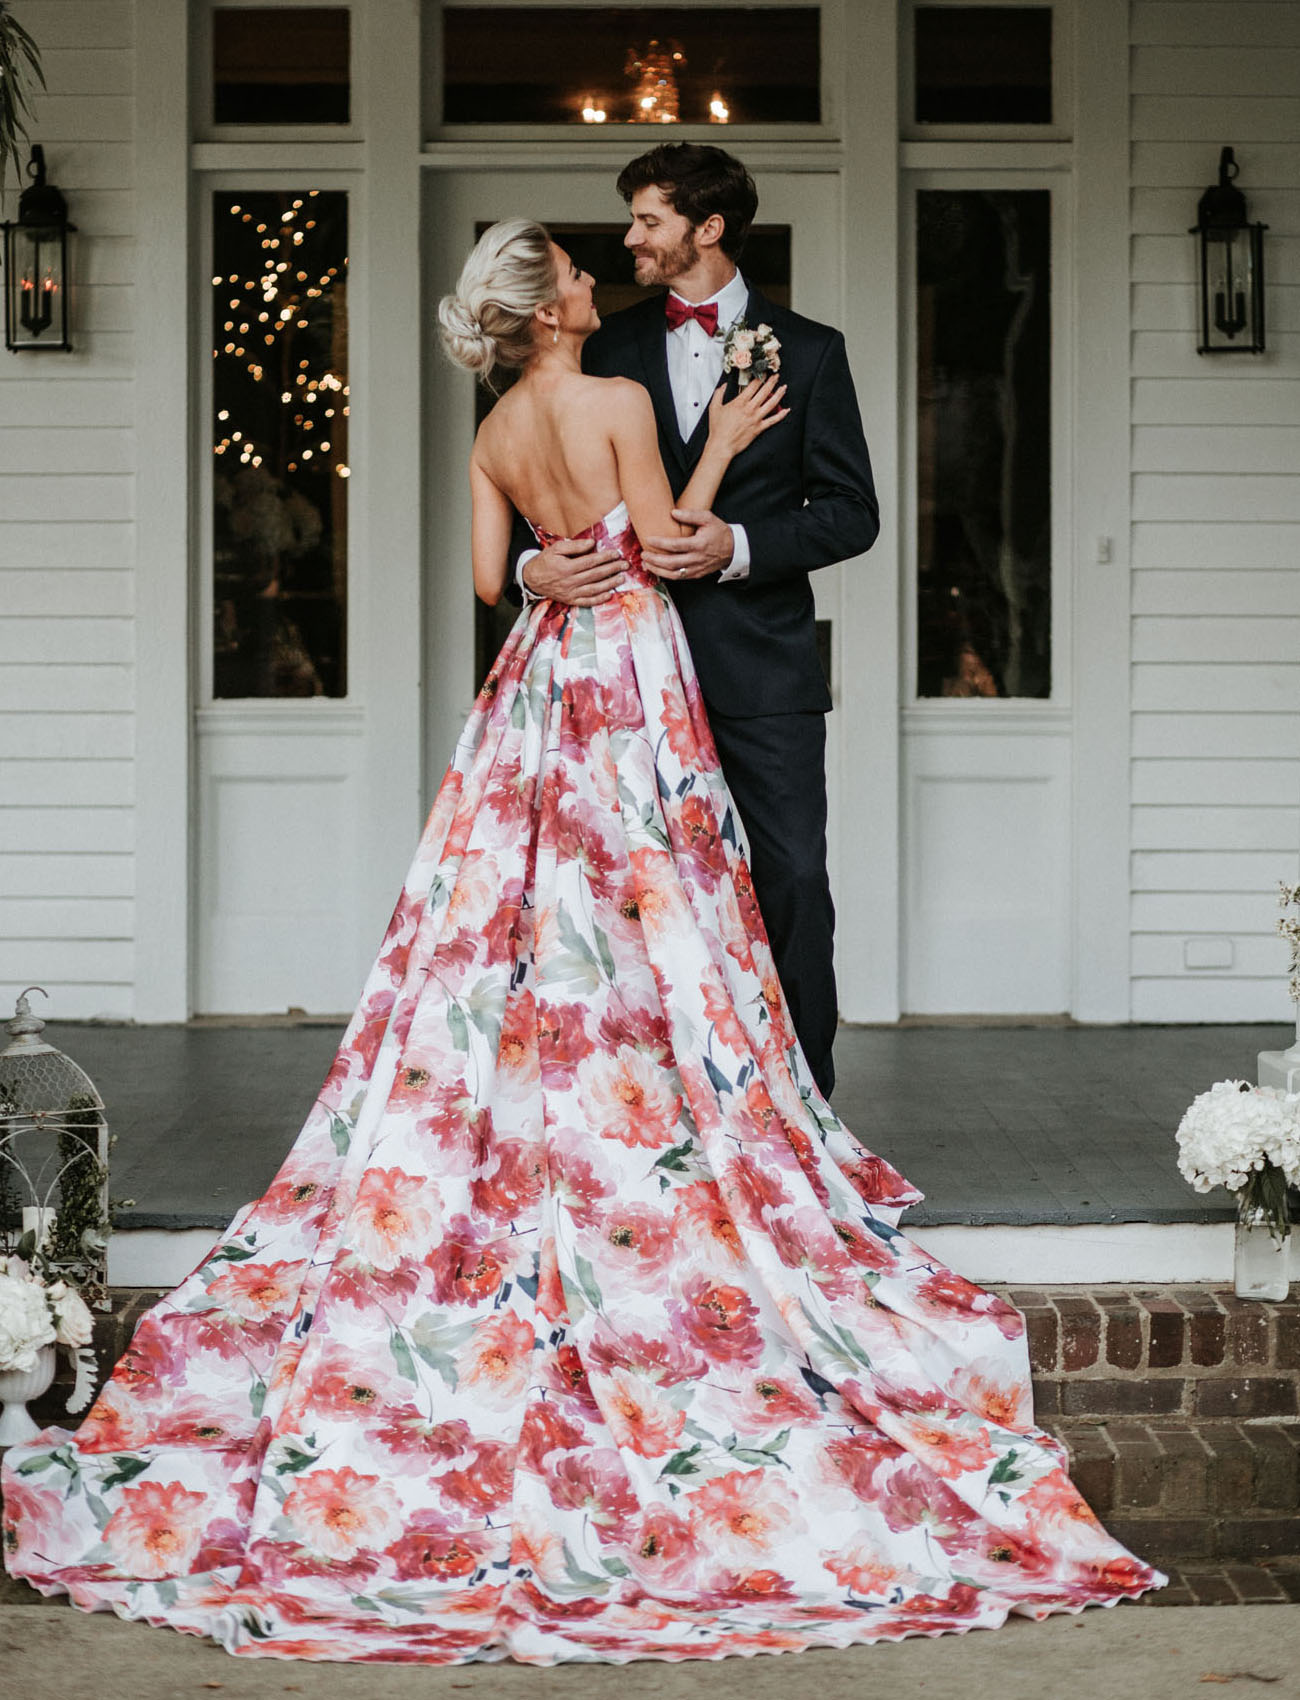 And The Bride Went Bold A Floral Wedding Dress For The Vibrant